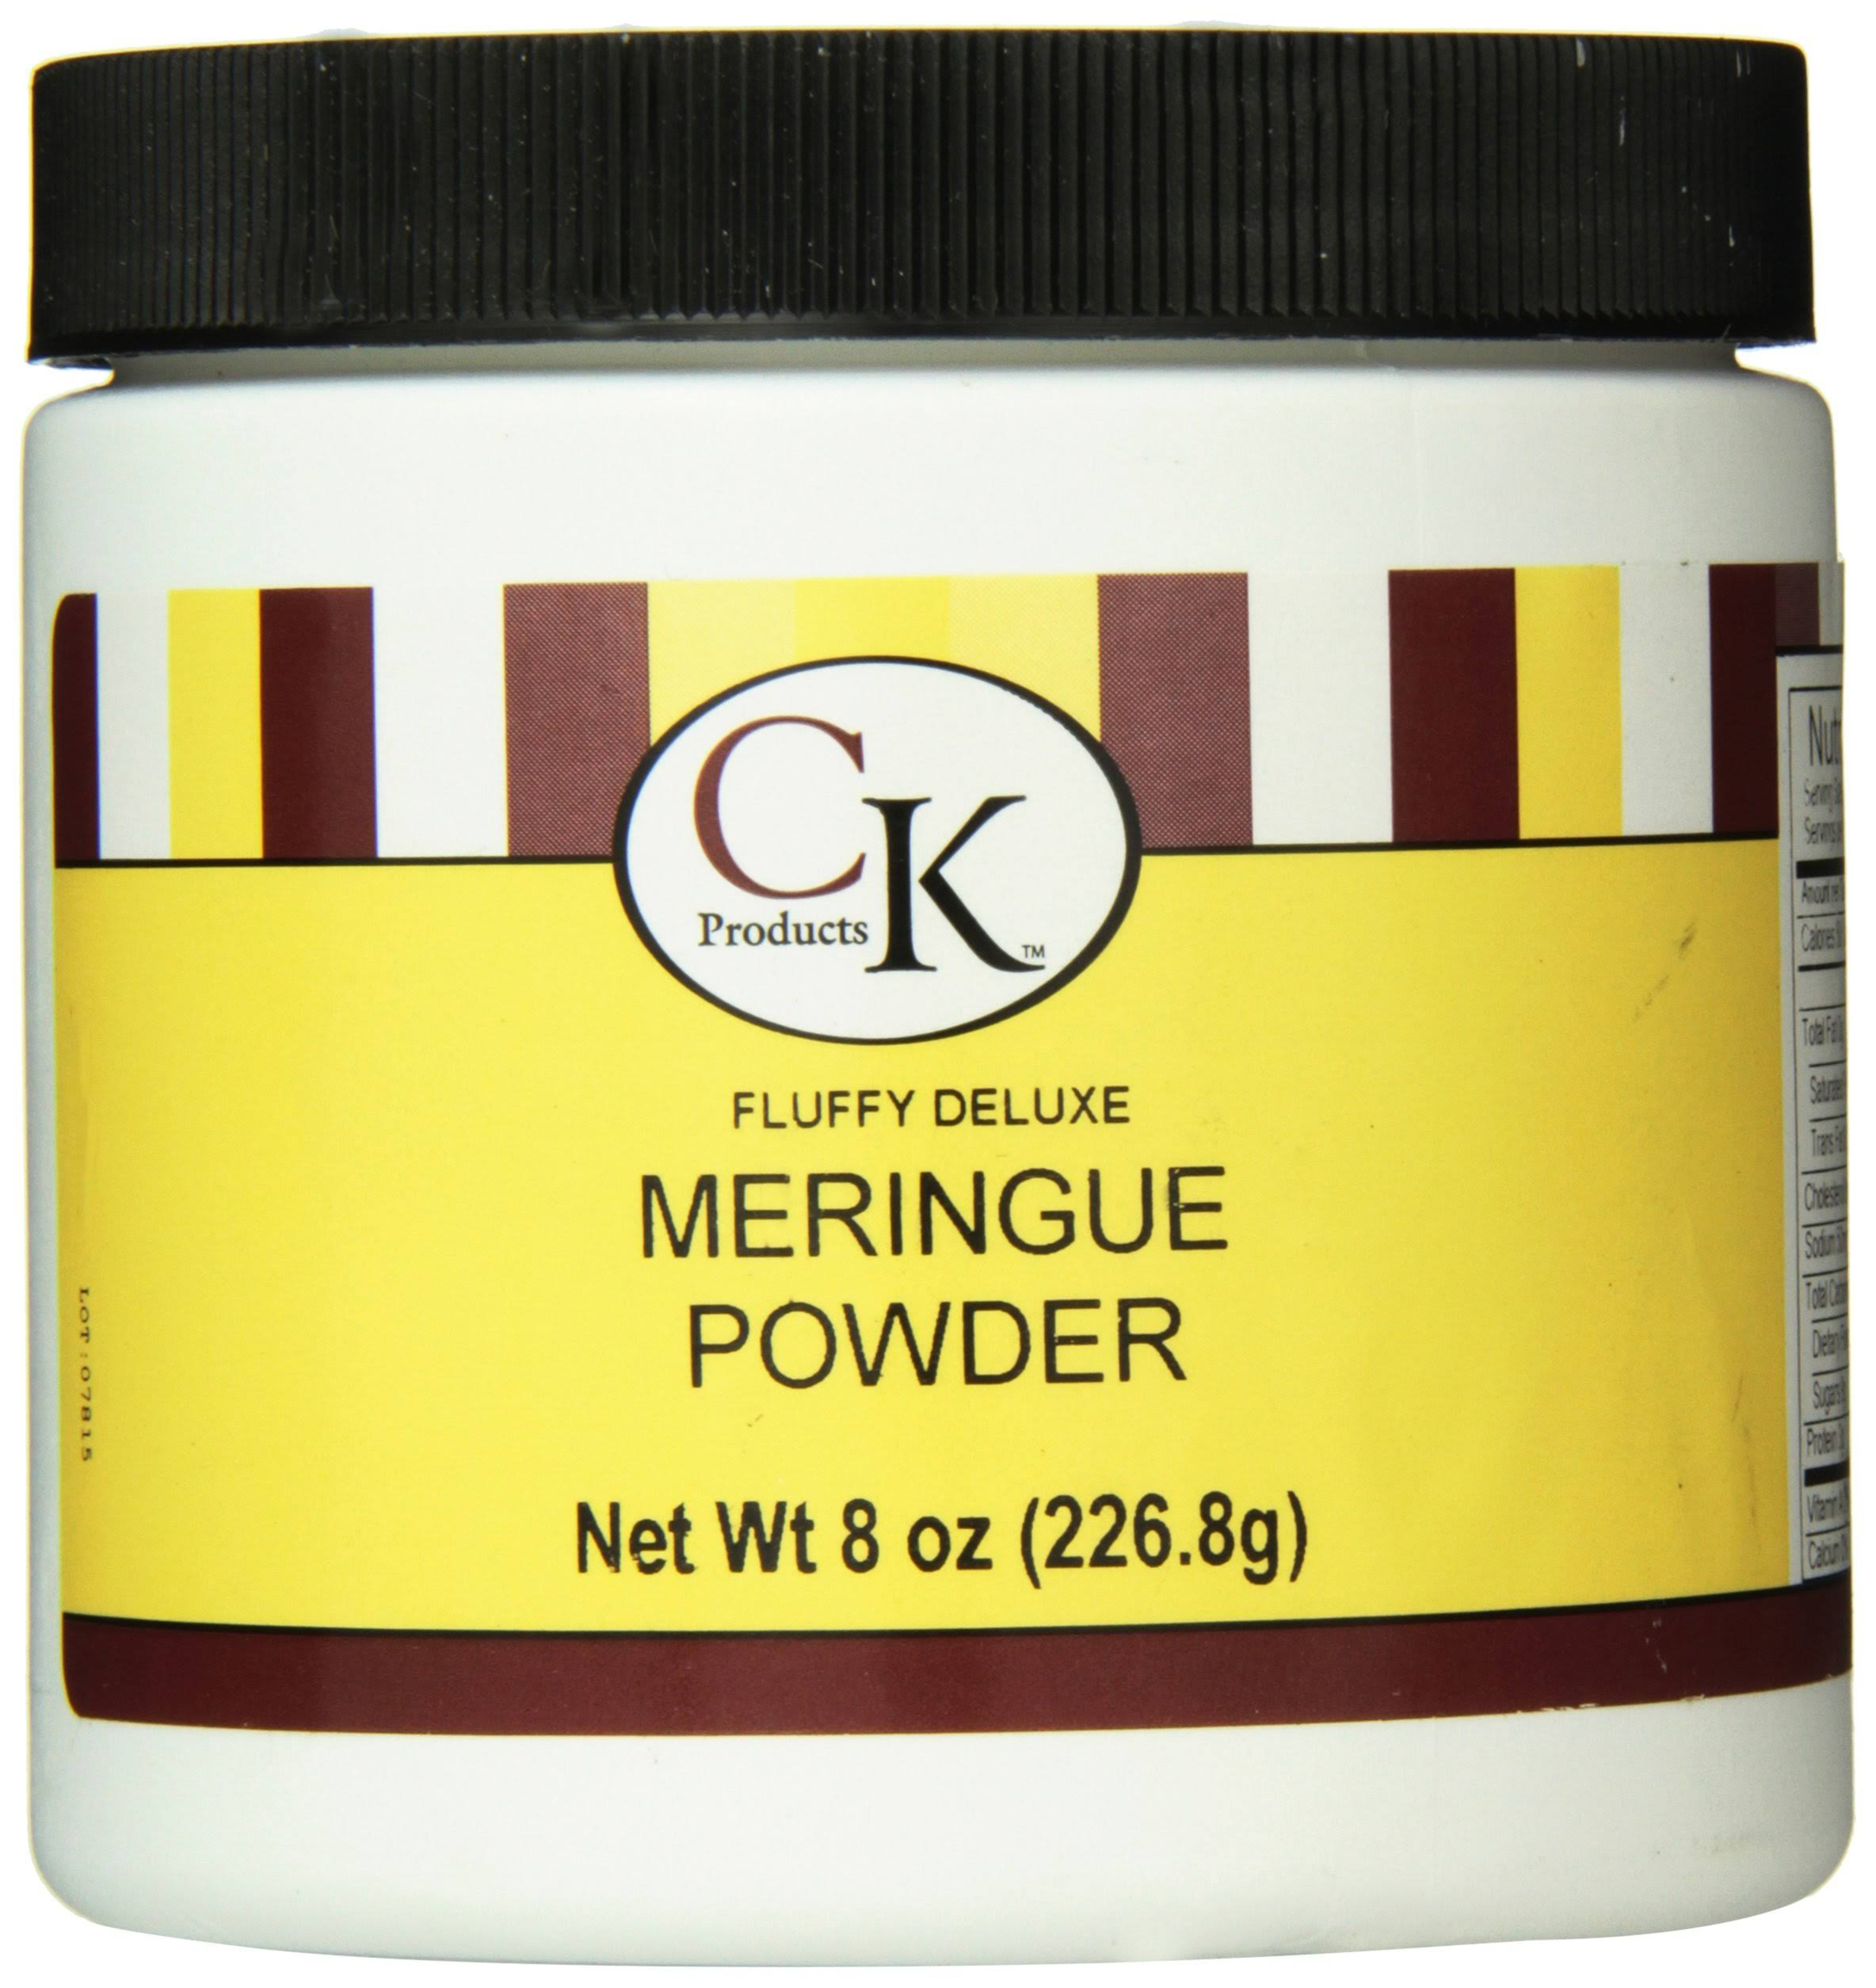 Ck Products Meringue Powder - 8oz